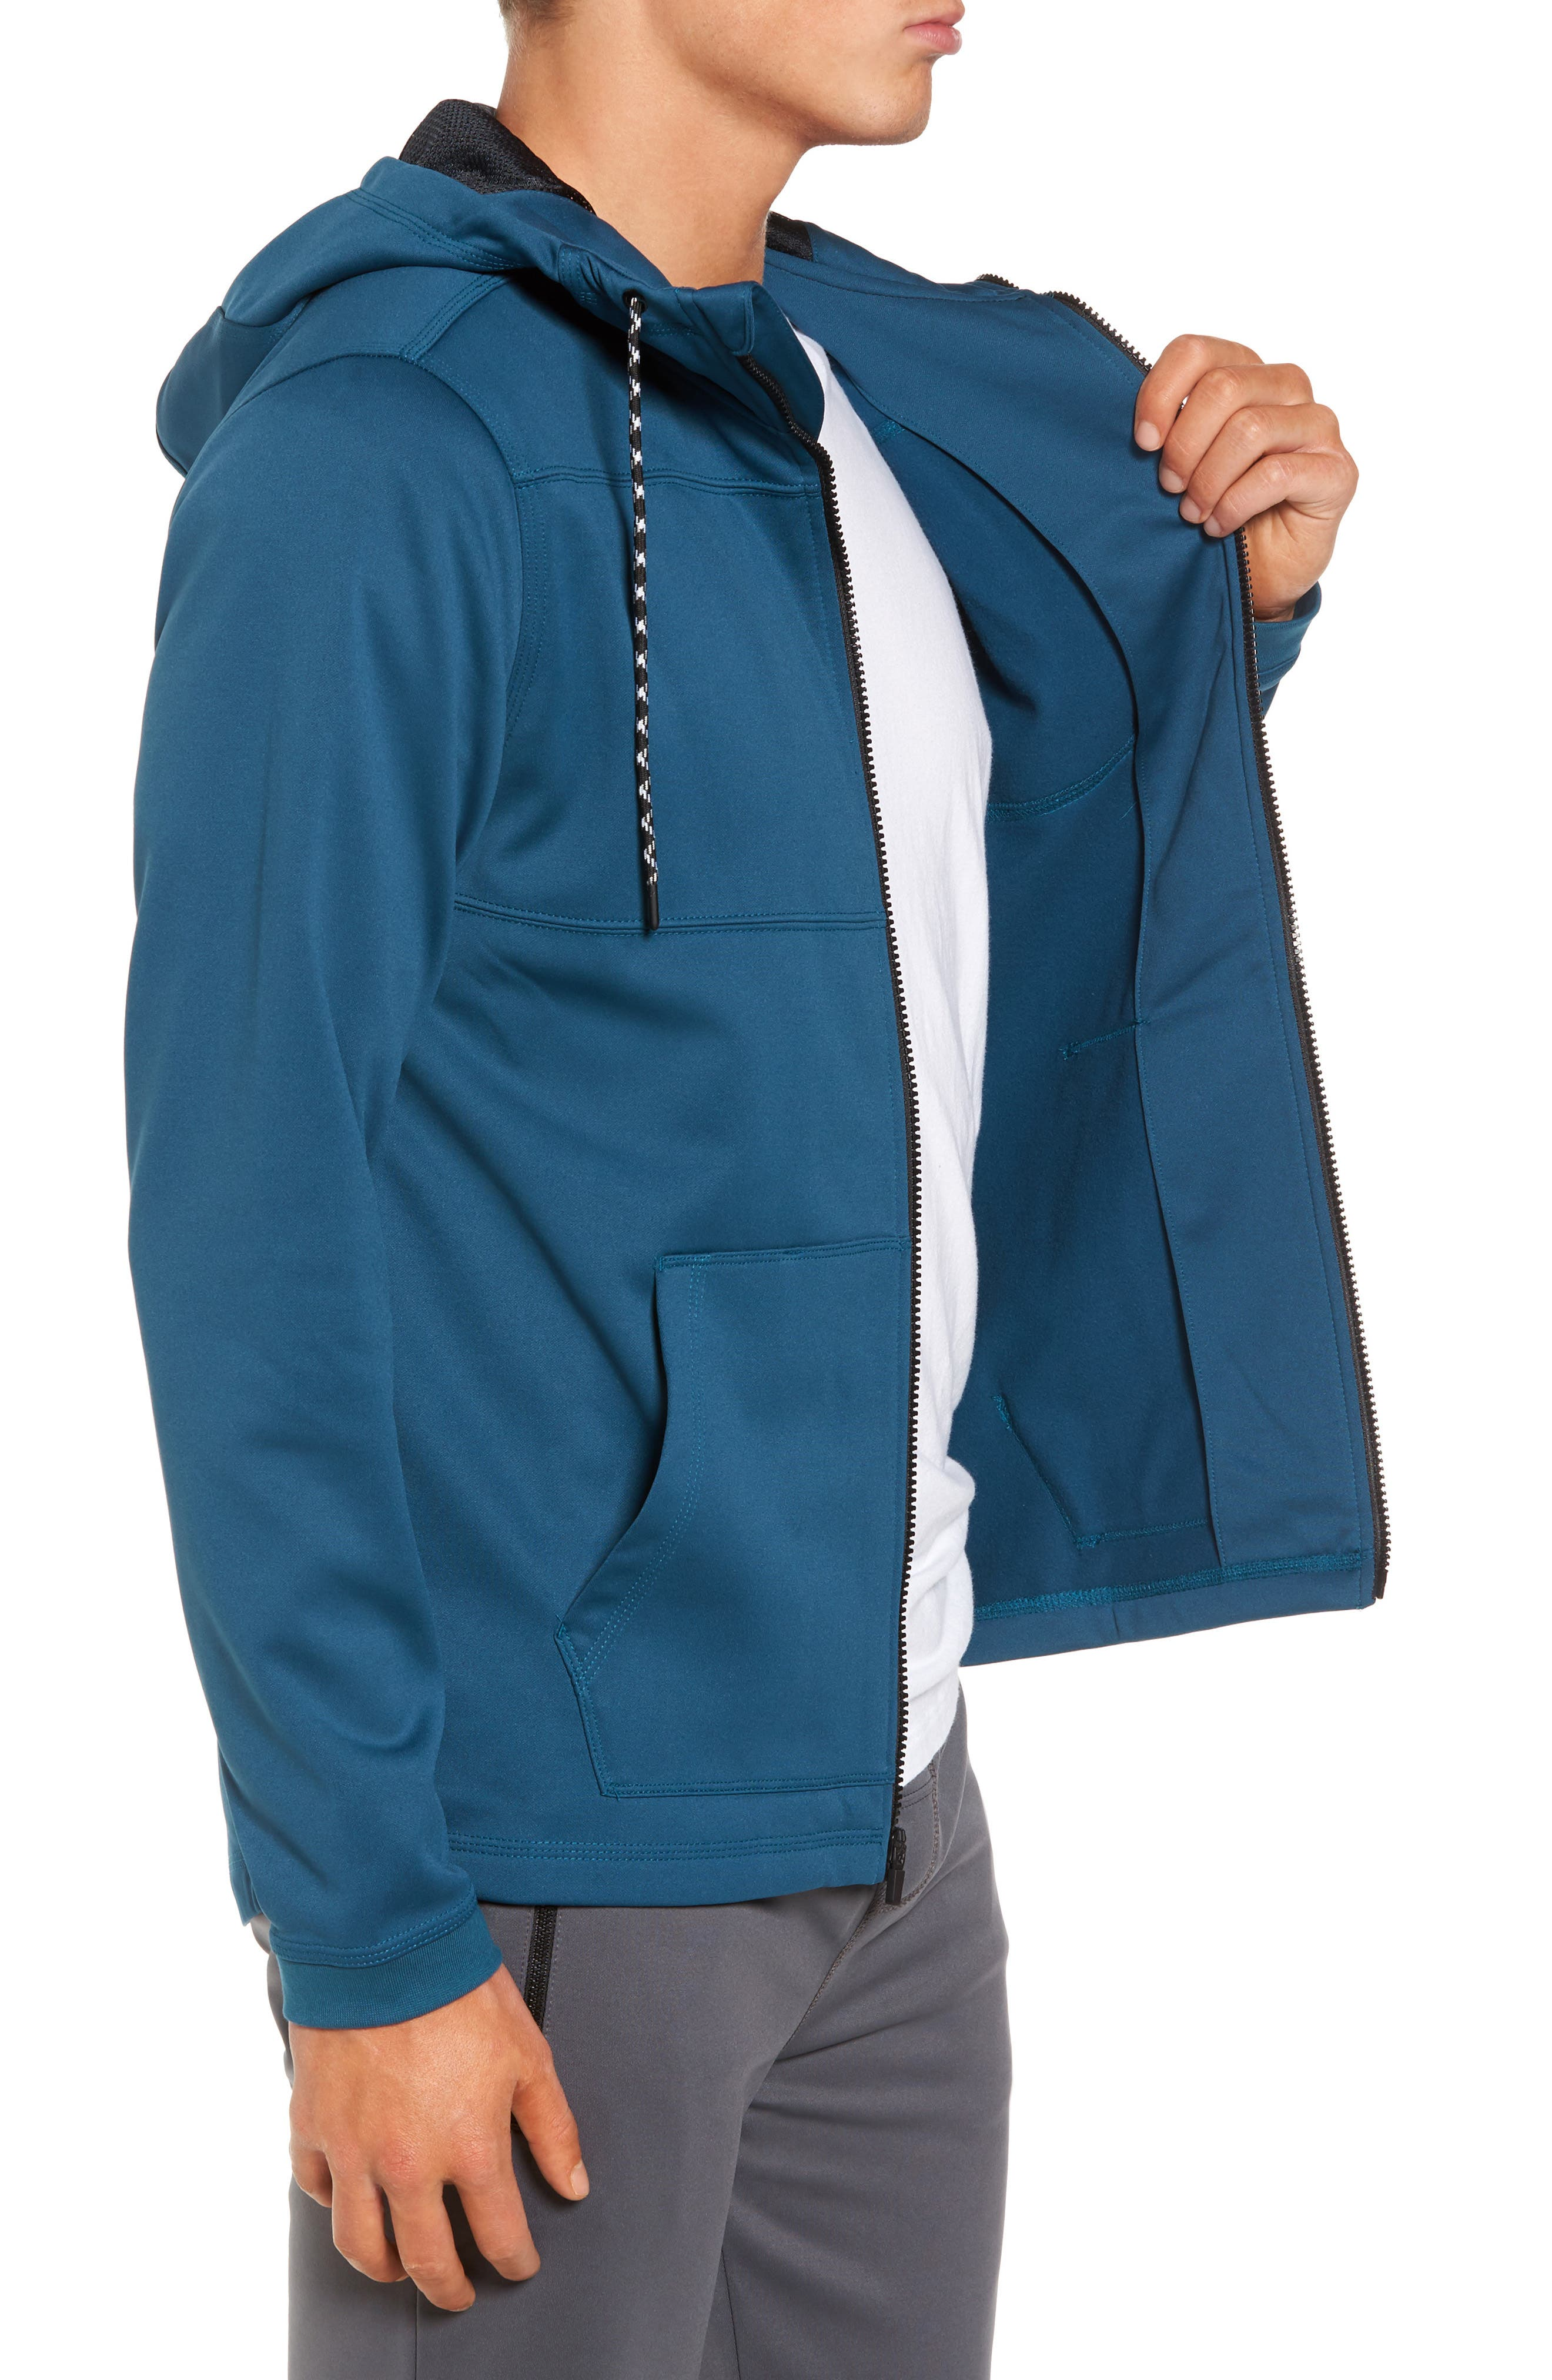 Therma Protect Zip Hoodie,                             Alternate thumbnail 3, color,                             Space Blue